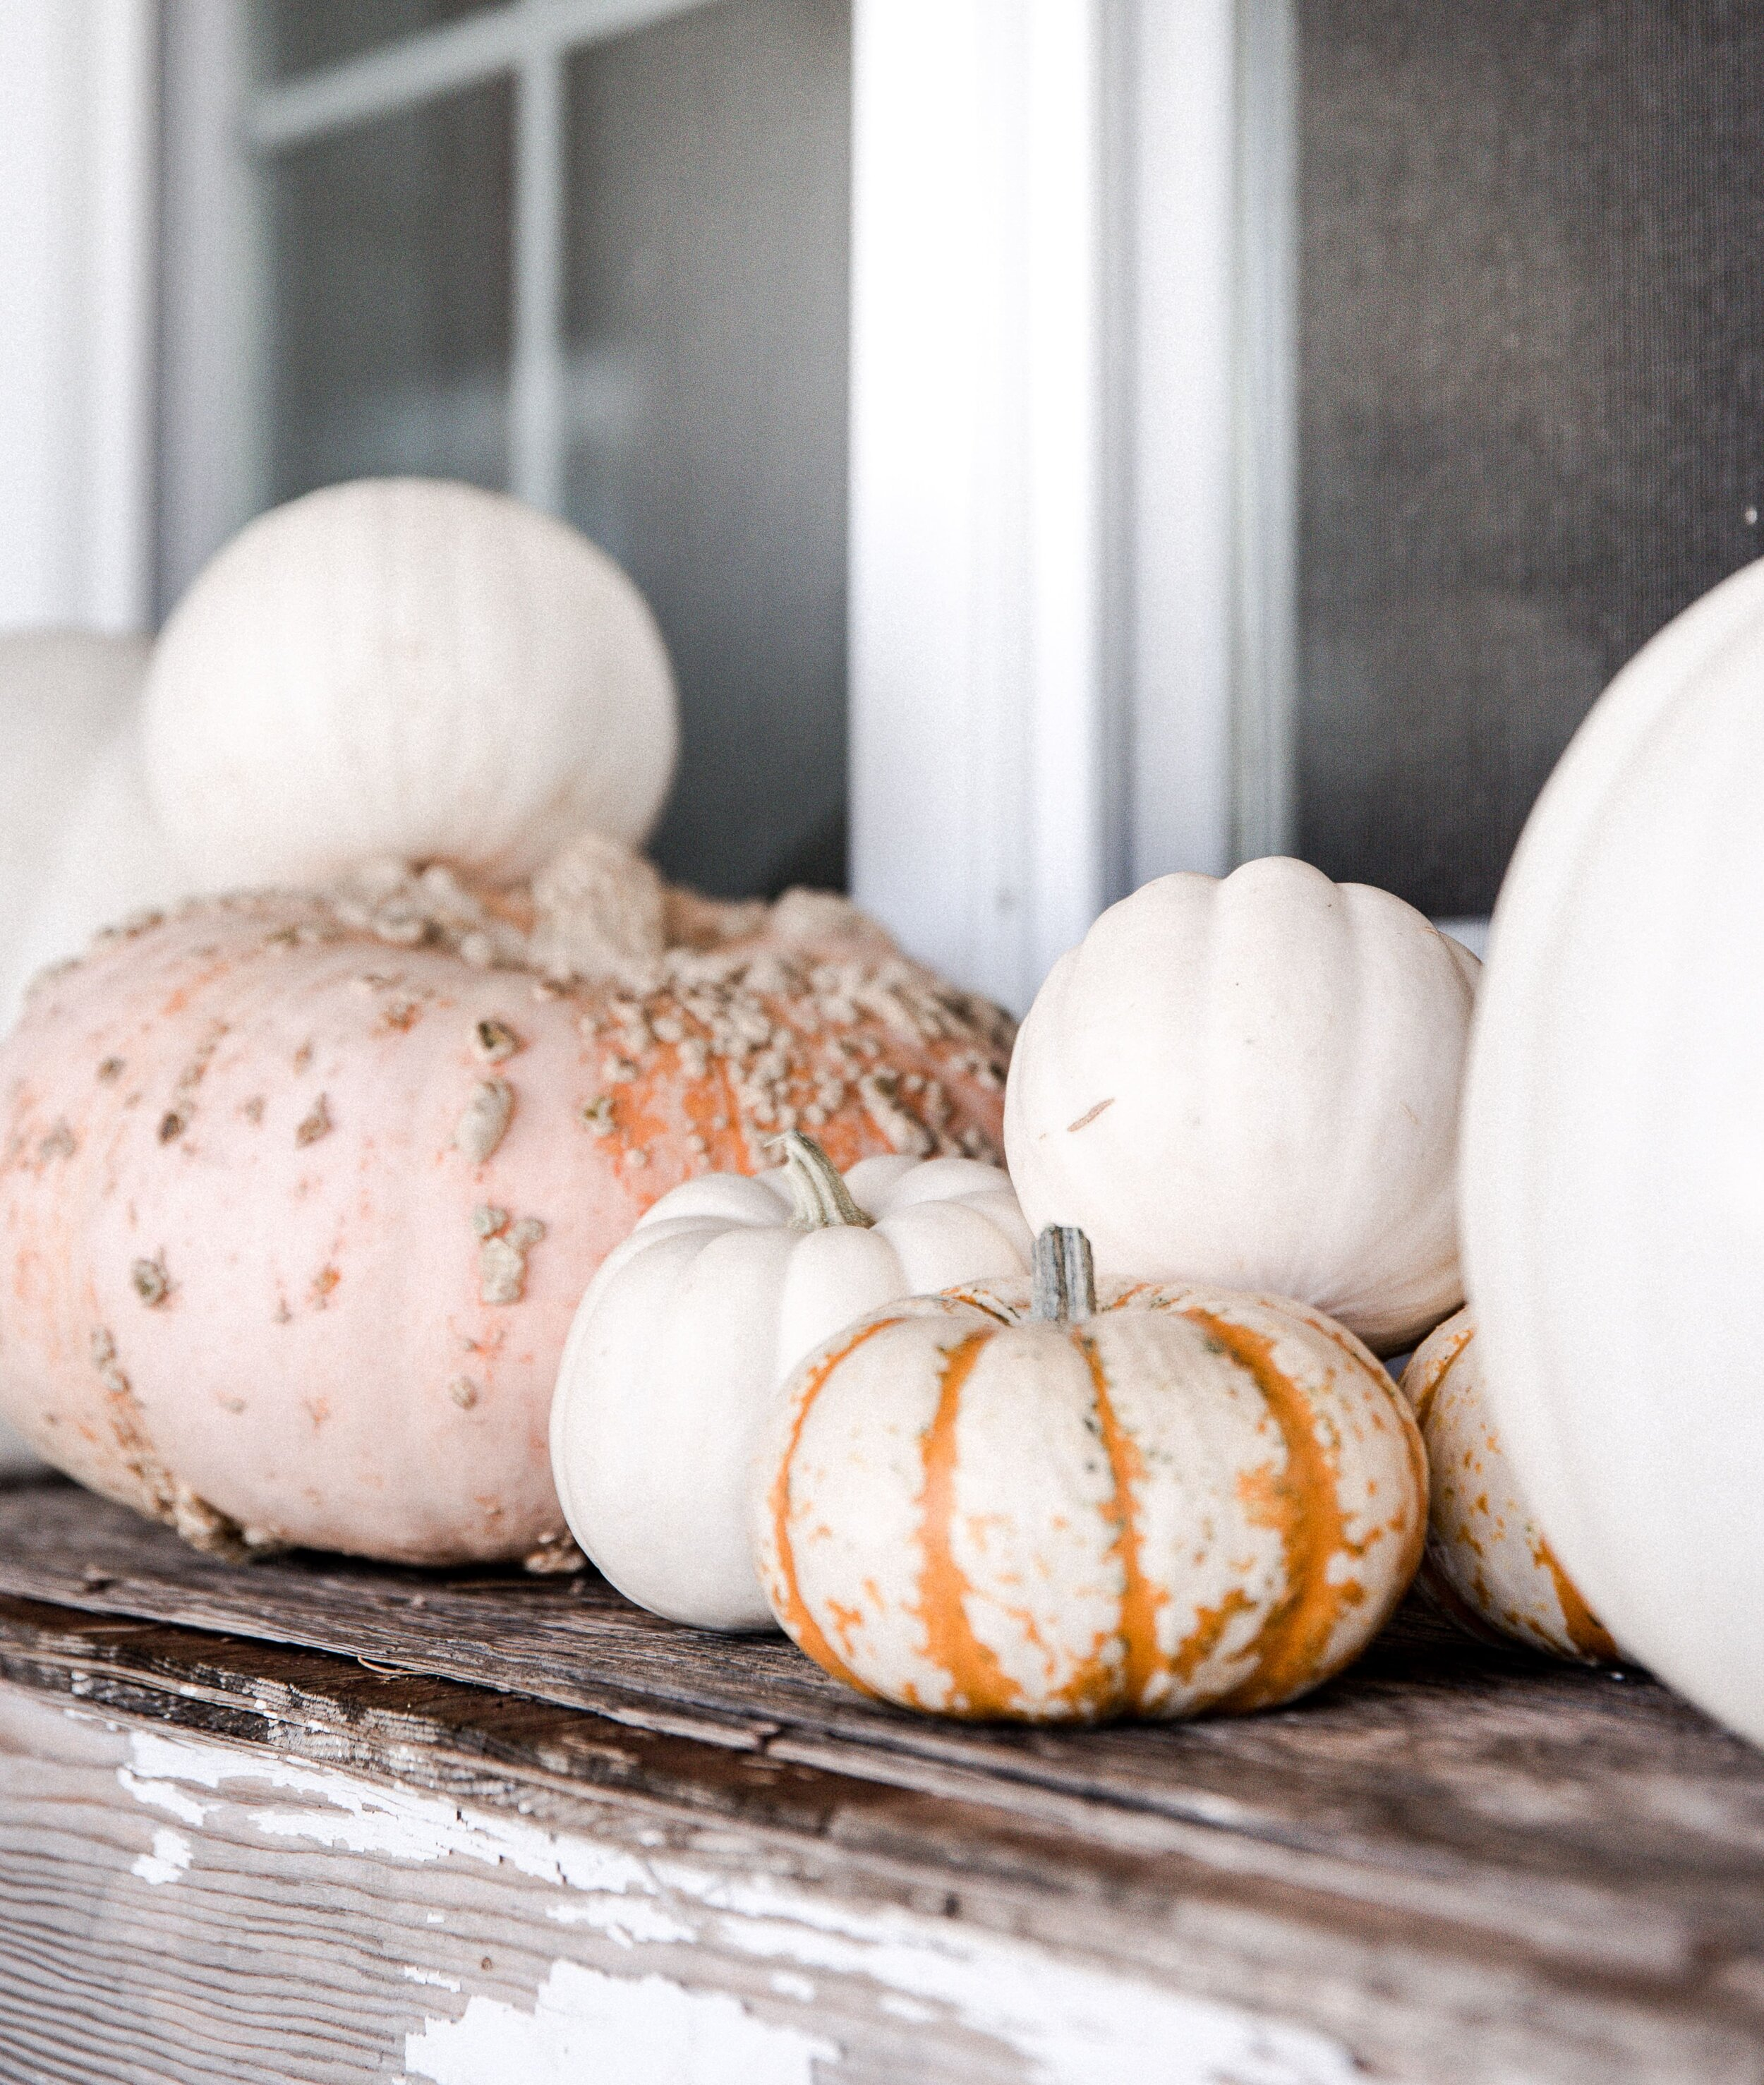 Fall porch decor: pumpkins! Use white and unique pumpkins. #pumpkins #fallporch #farmhouse